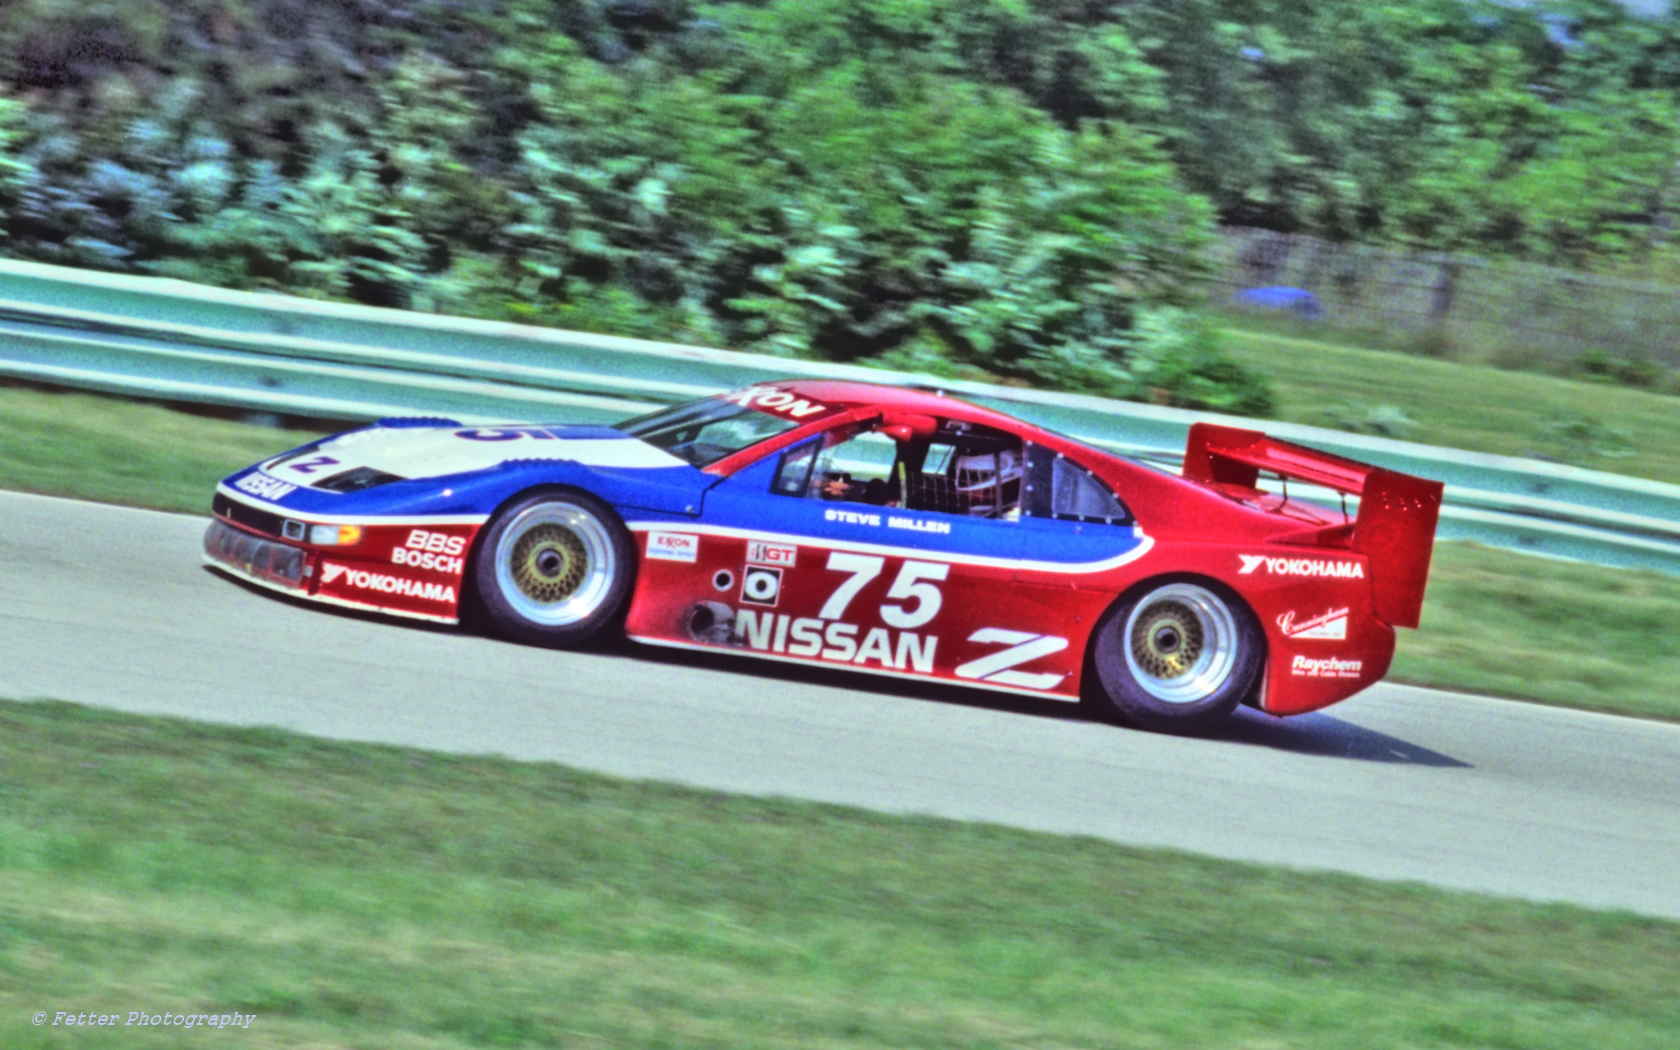 1991 Nissan 300 ZX GTO #75 | Flickr - Photo Sharing!